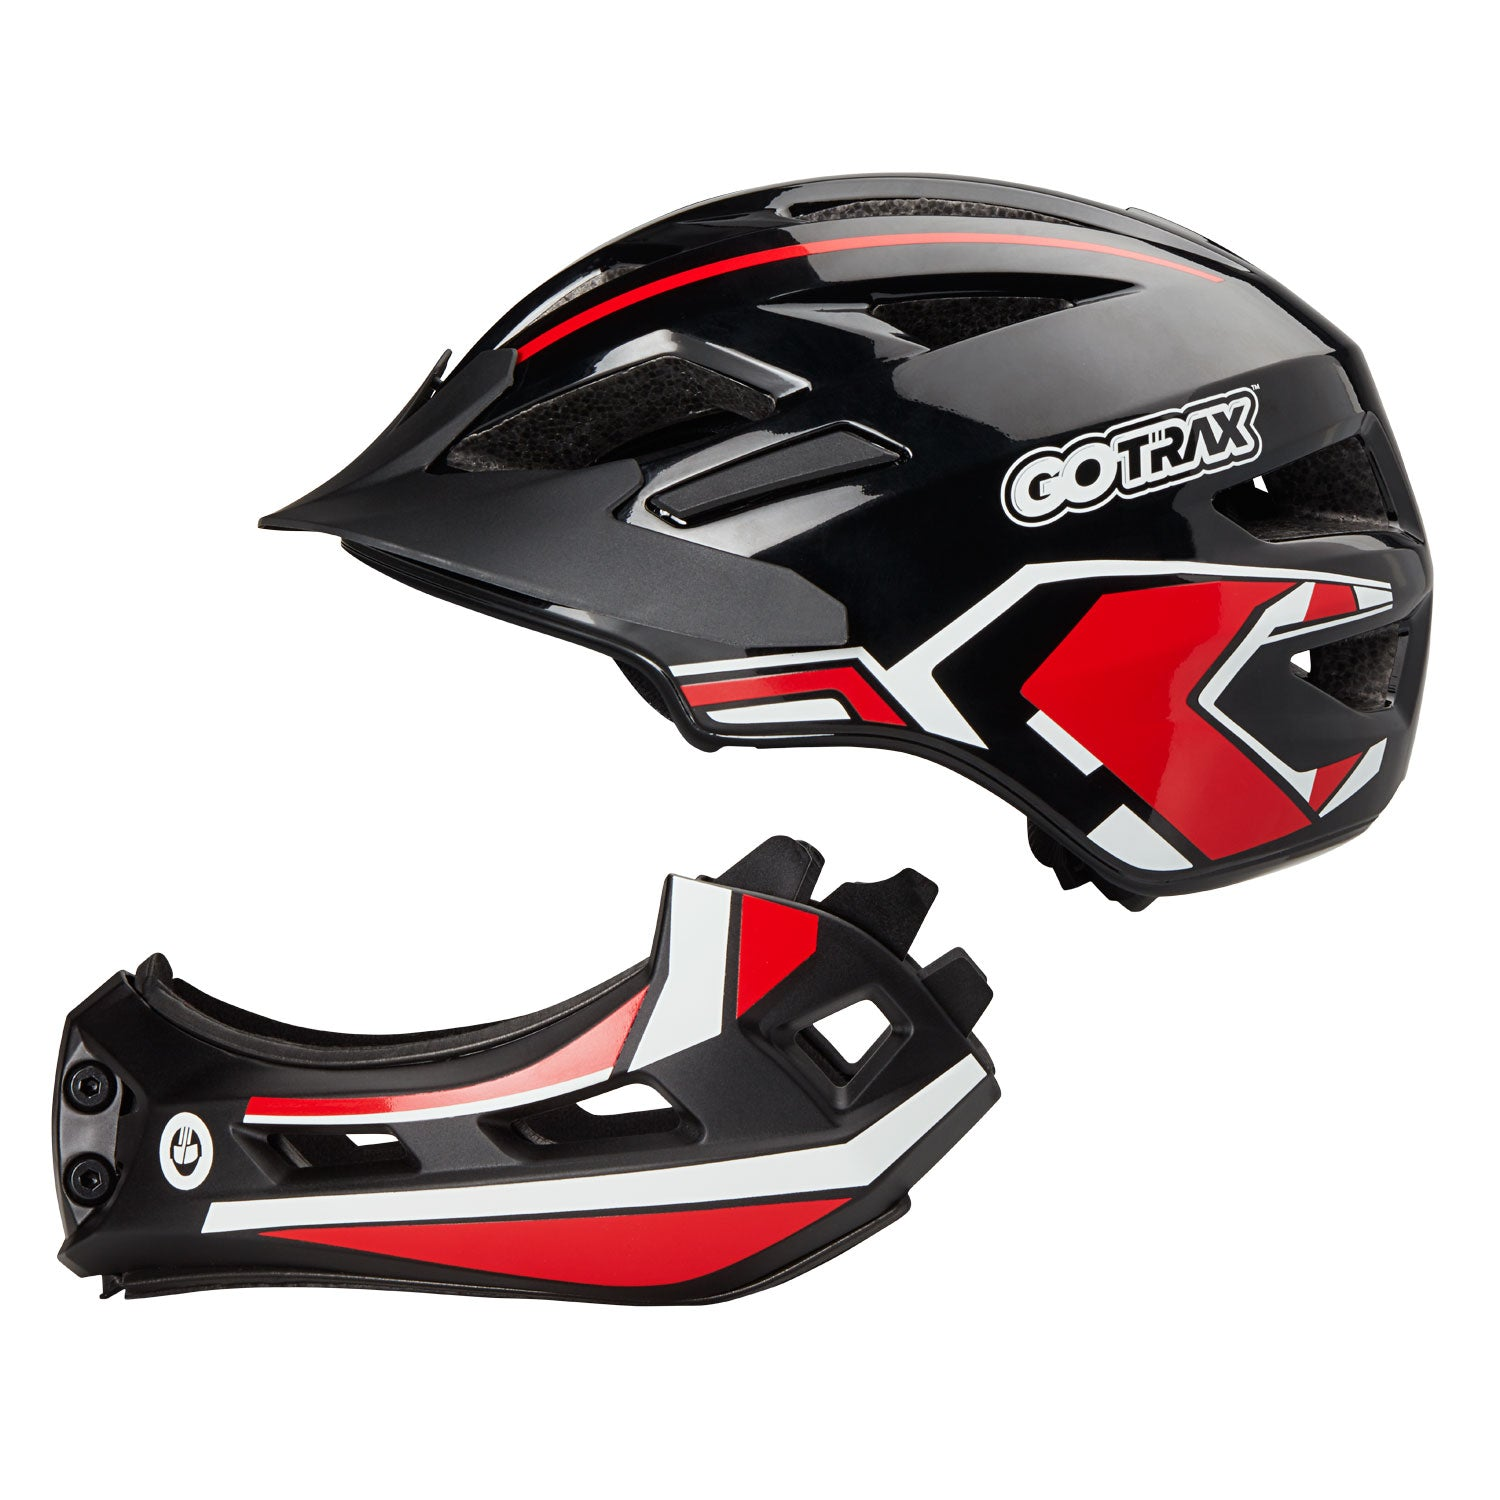 Red GOTRAX 2 in 1 Helmet Separated Image